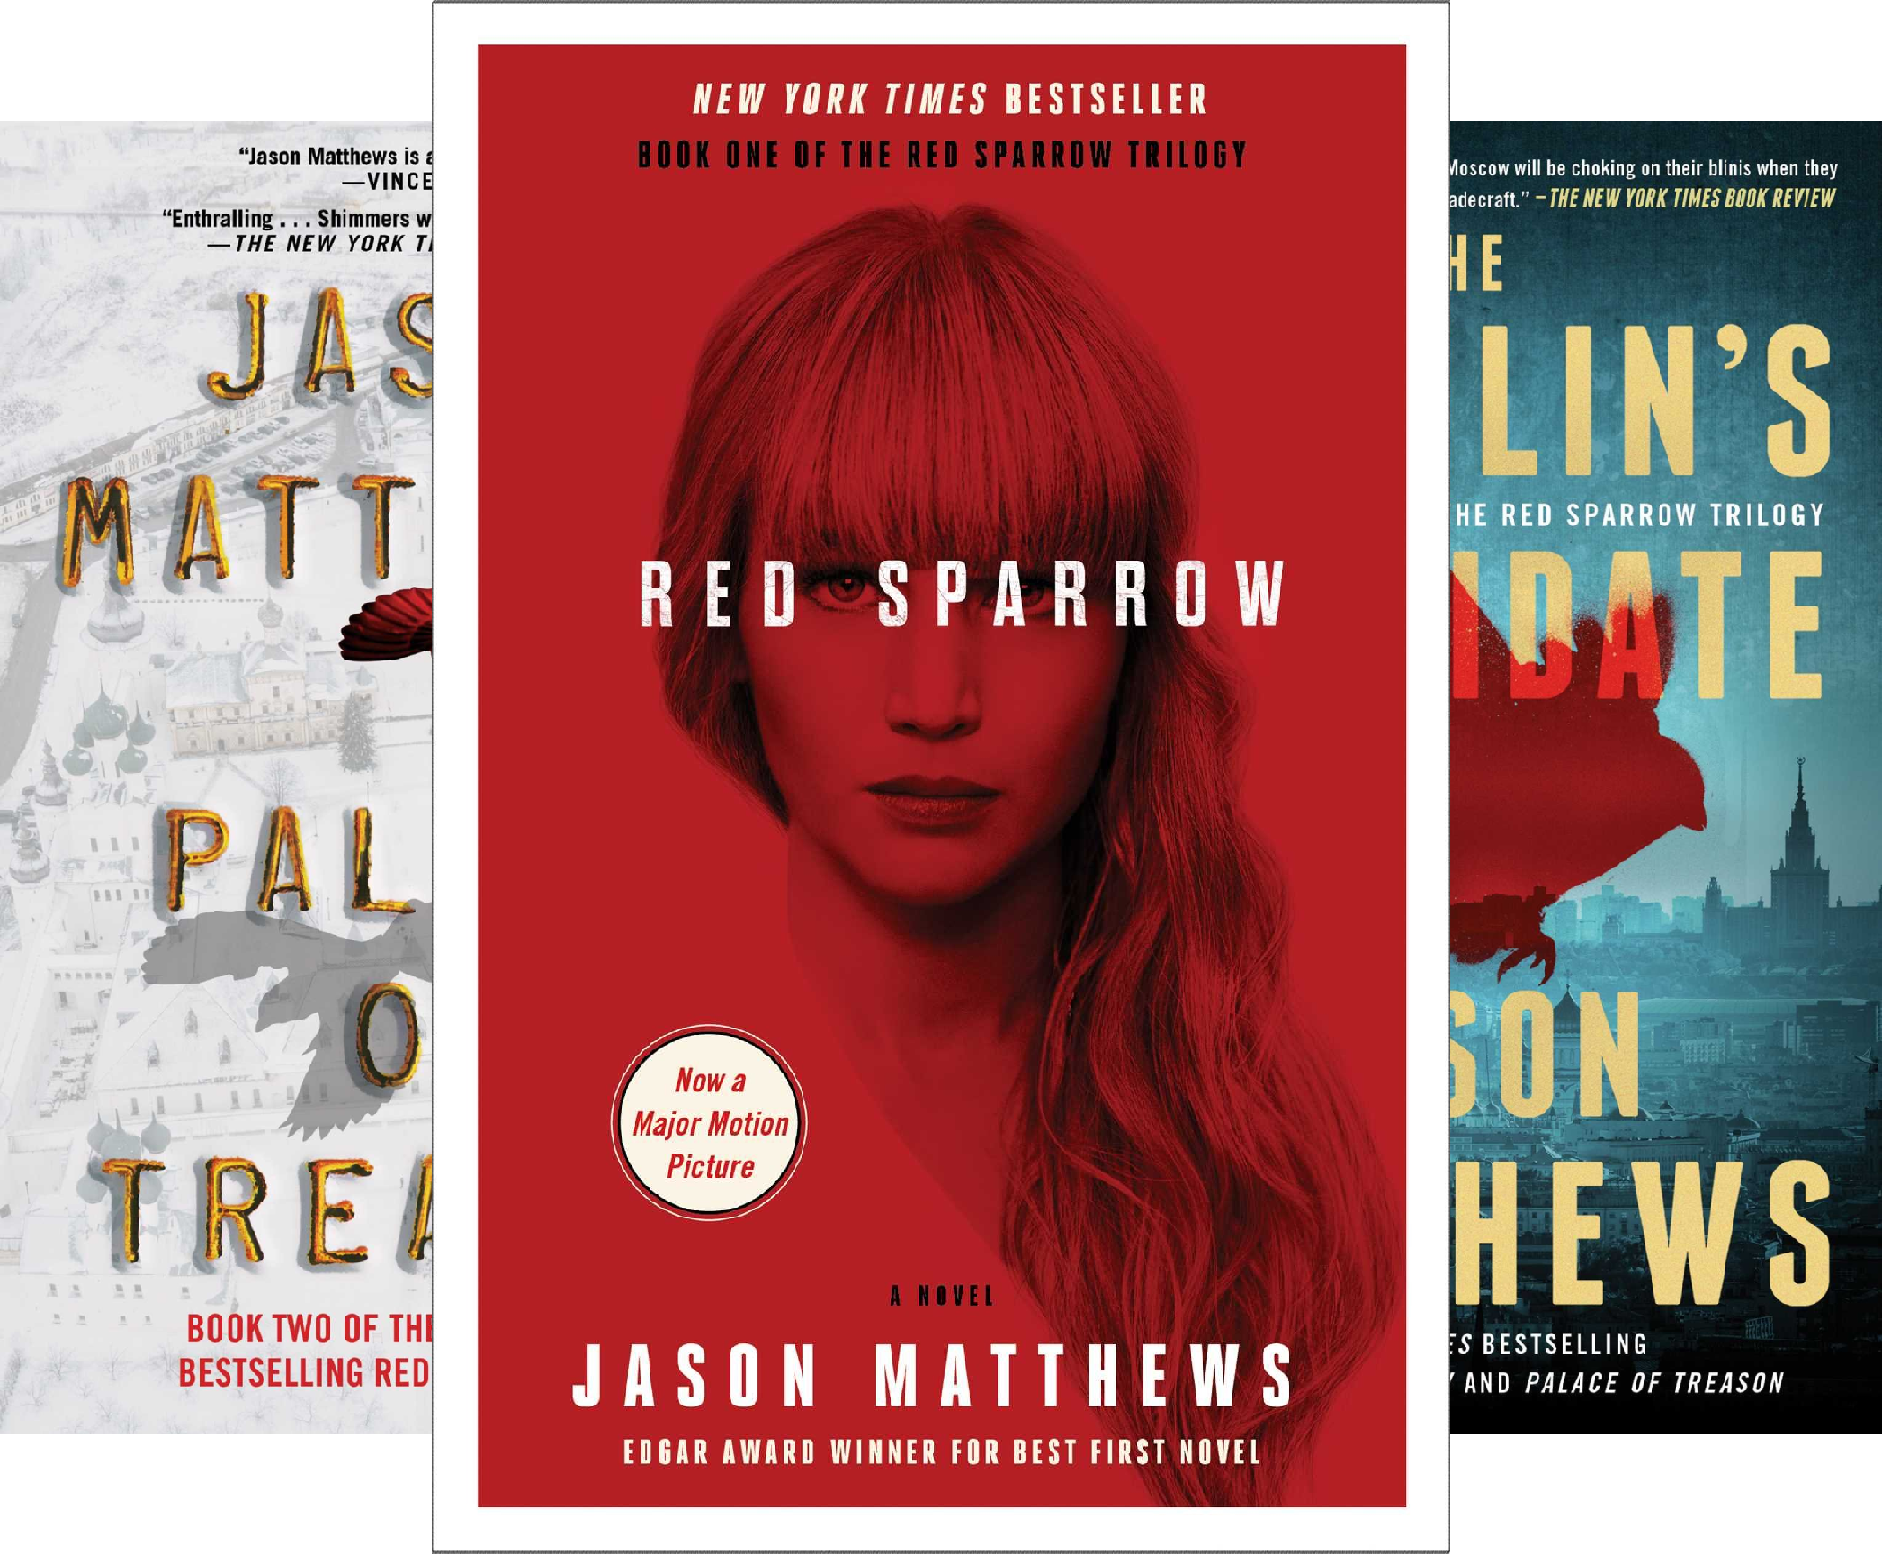 Red sparrow book 3 buyer's guide